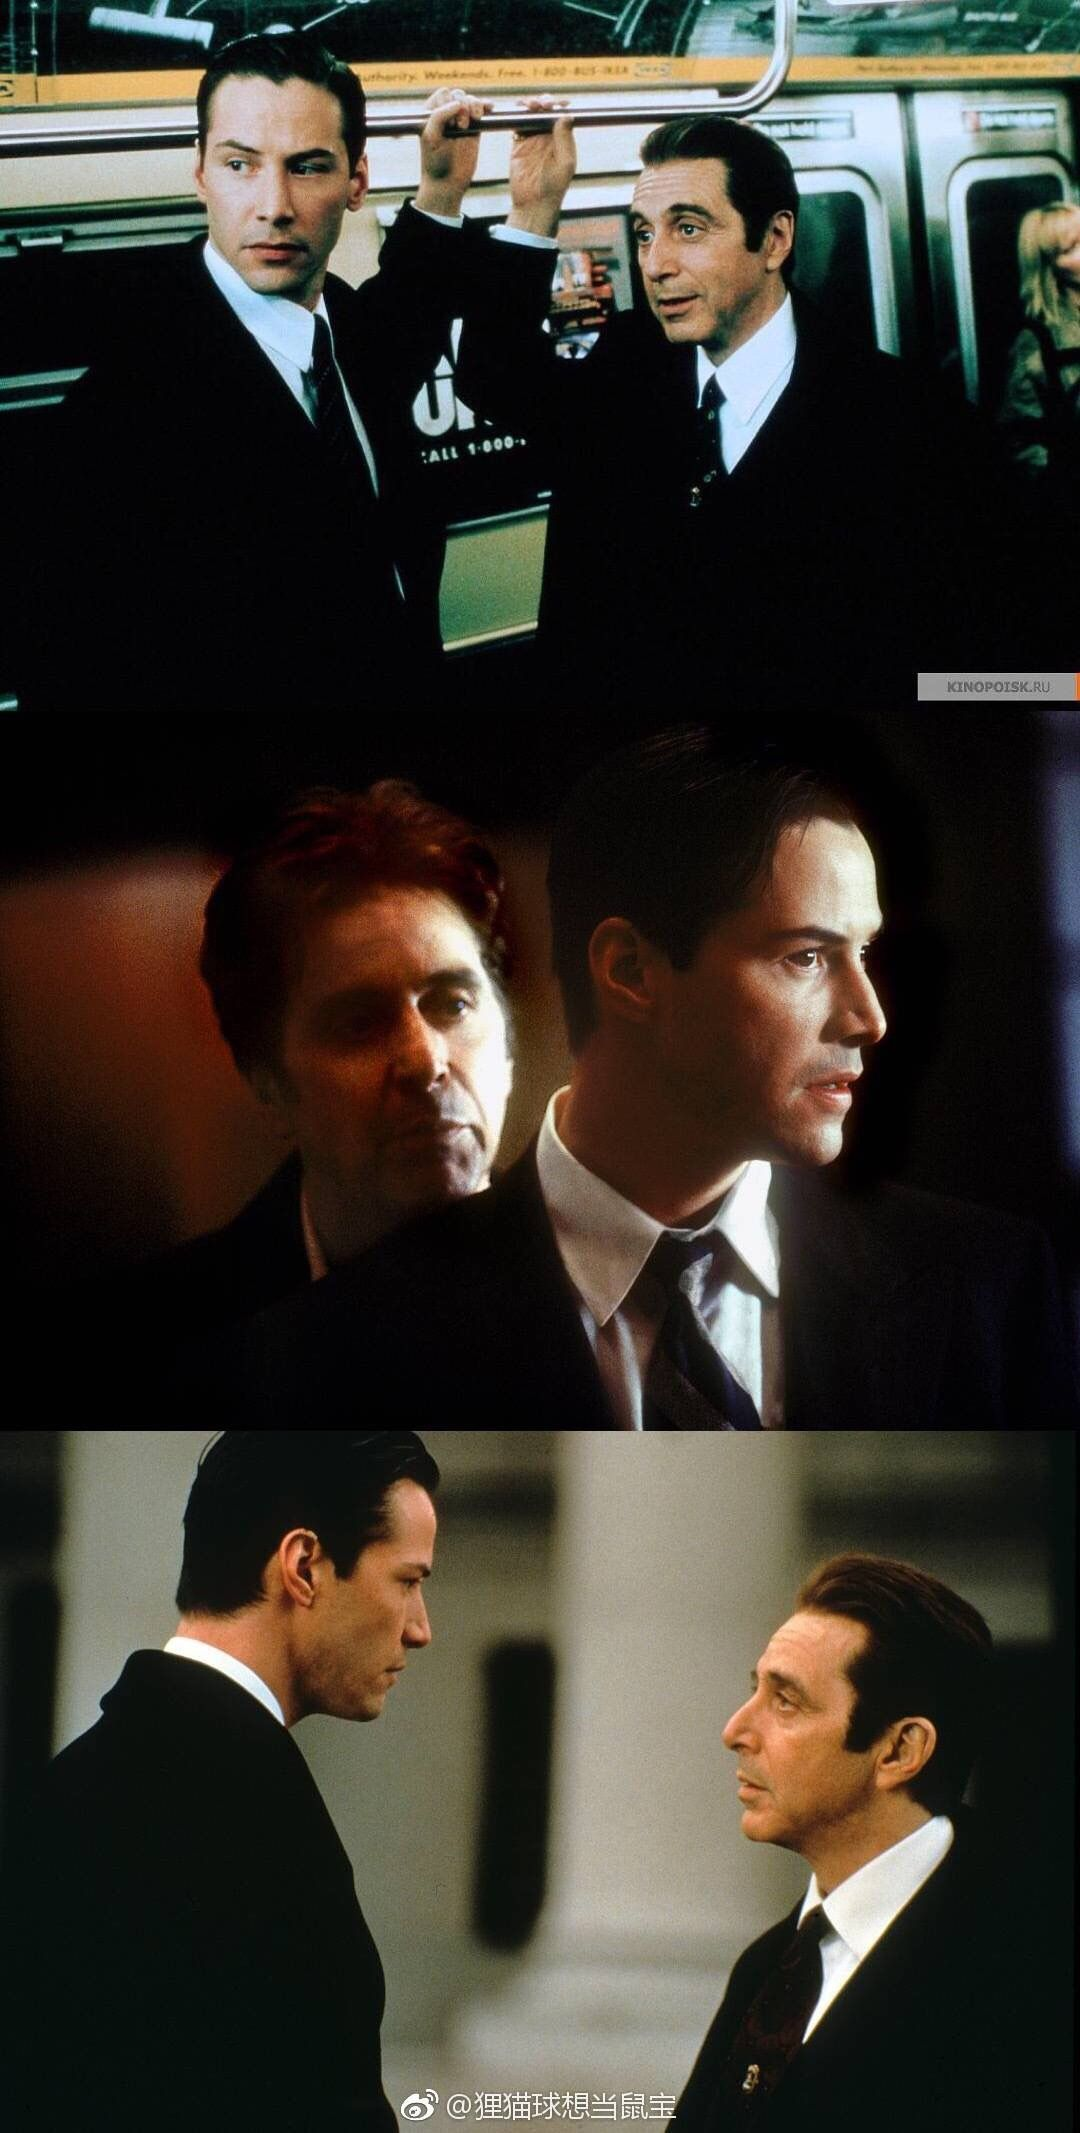 Pin By Mastermind On Al Pacino Al Pacino Keanu Reeves Iconic